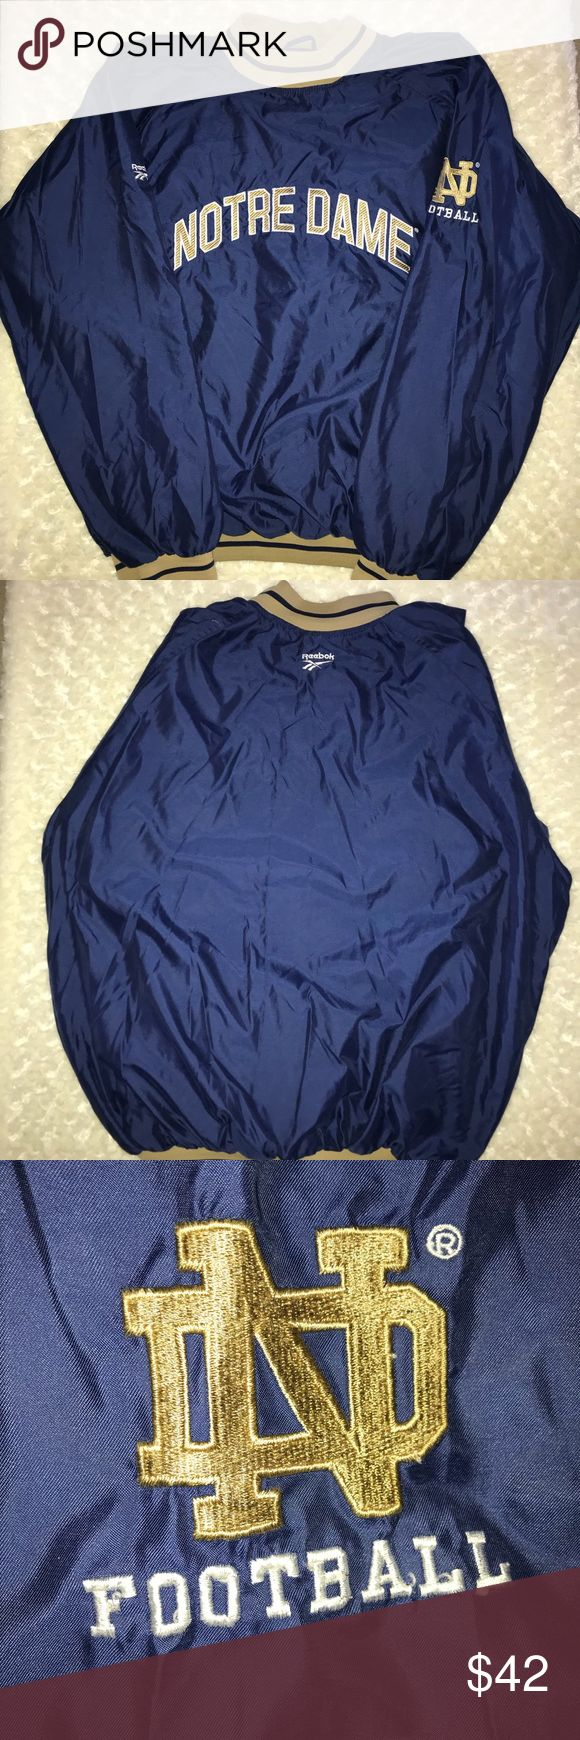 Vintage Men's Reebok Notre Dame pullover XL Vintage men's Reebok Notre Dame football pullover sweatshirt, size XL, gently used excellent condition no stains, holes, or pulls. Lined interior Reebok Jackets & Coats Windbreakers